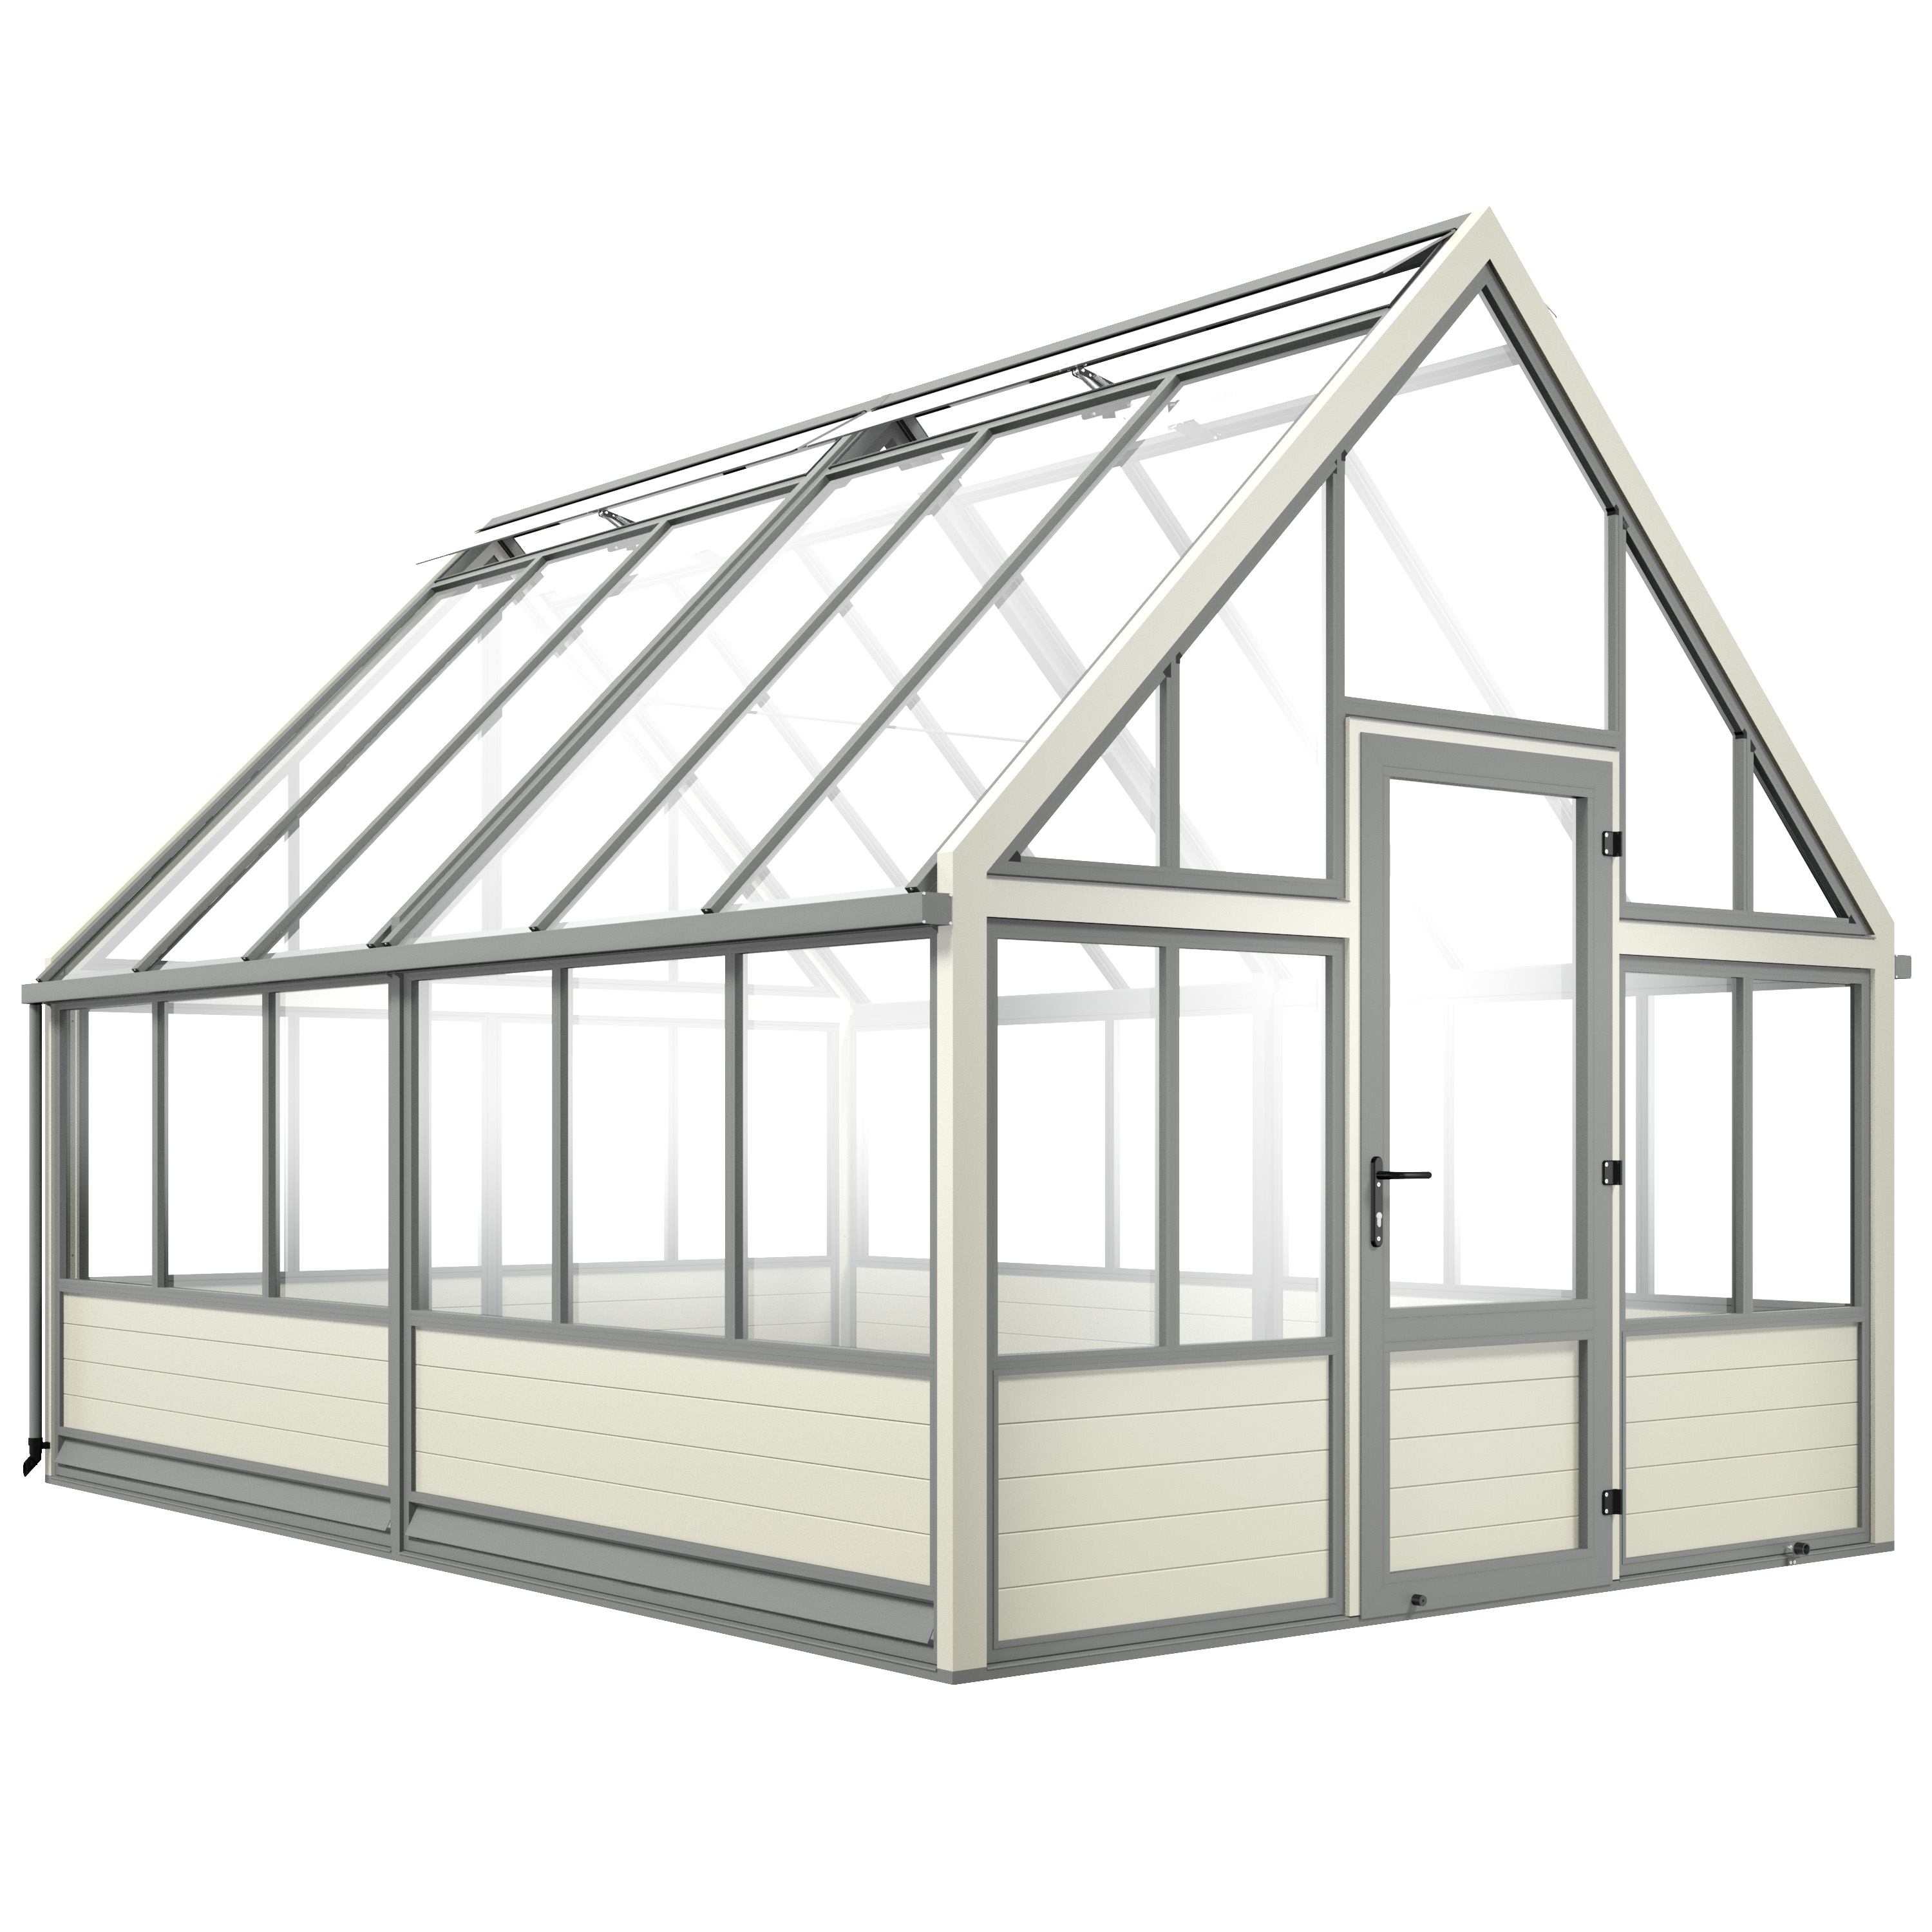 greenhouse_special_offer